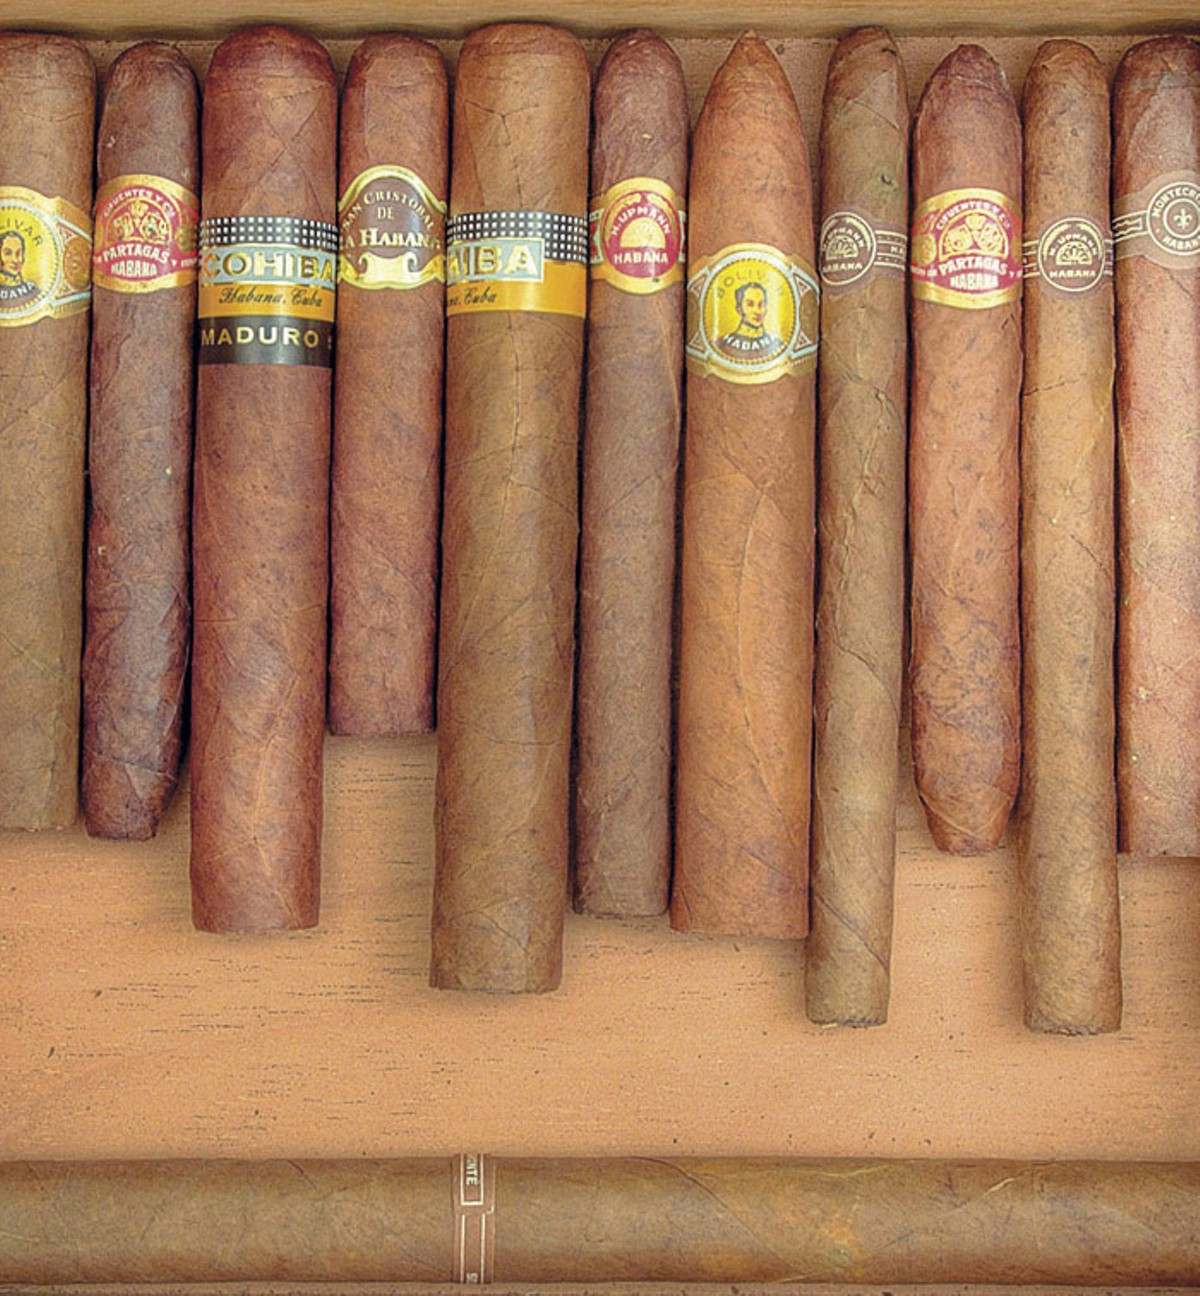 The Hill Cigar Company has a selection of boutique cigars.